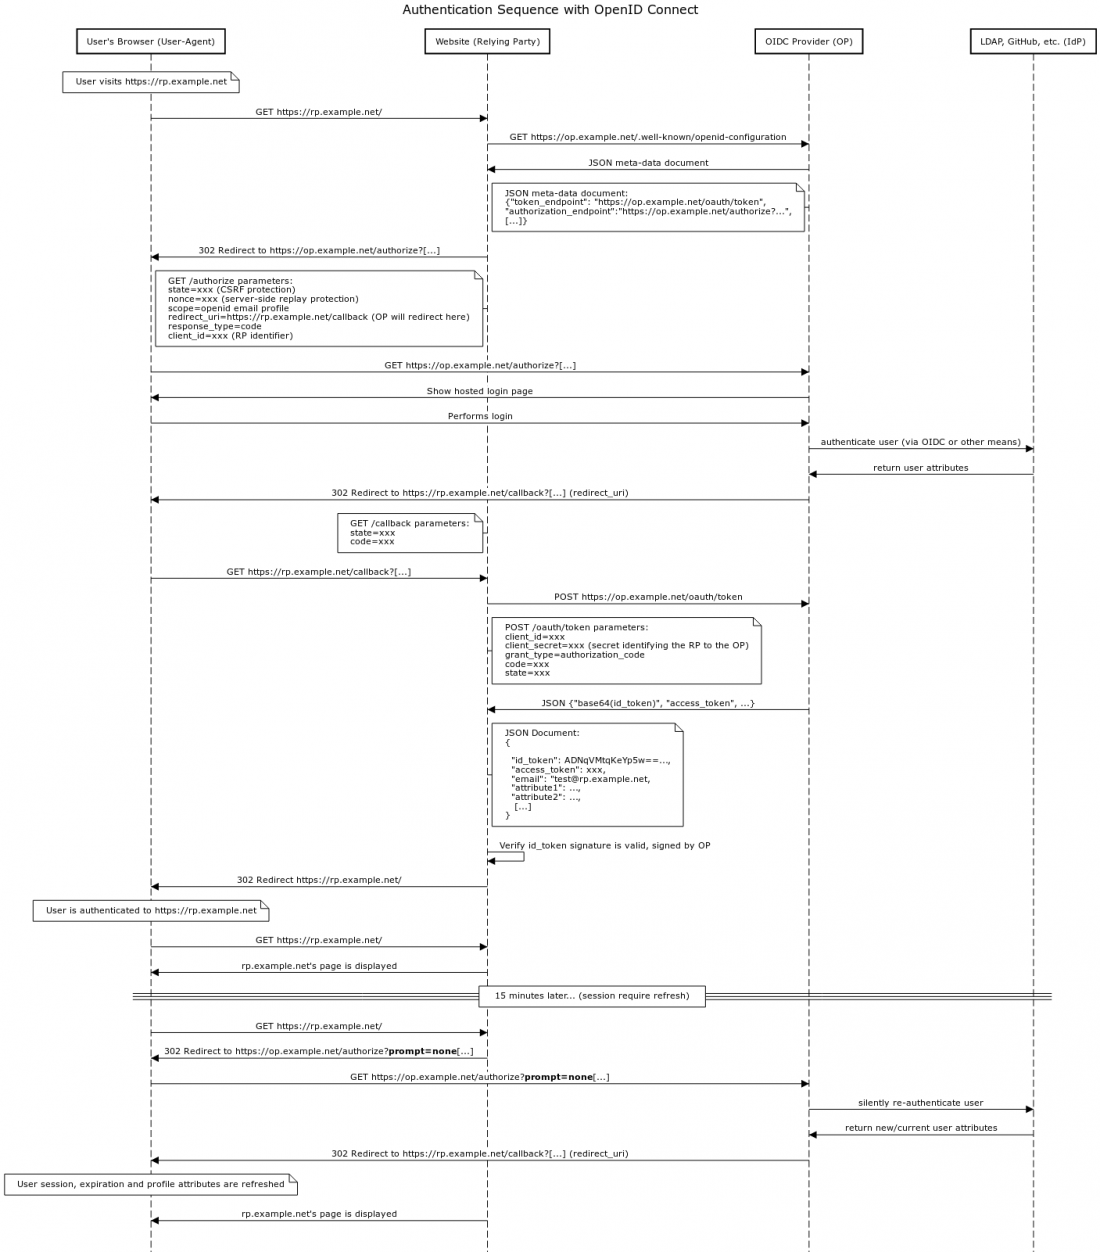 sequence diagram for web application 2005 ford five hundred stereo wiring security guidelines openid connect mozillawiki